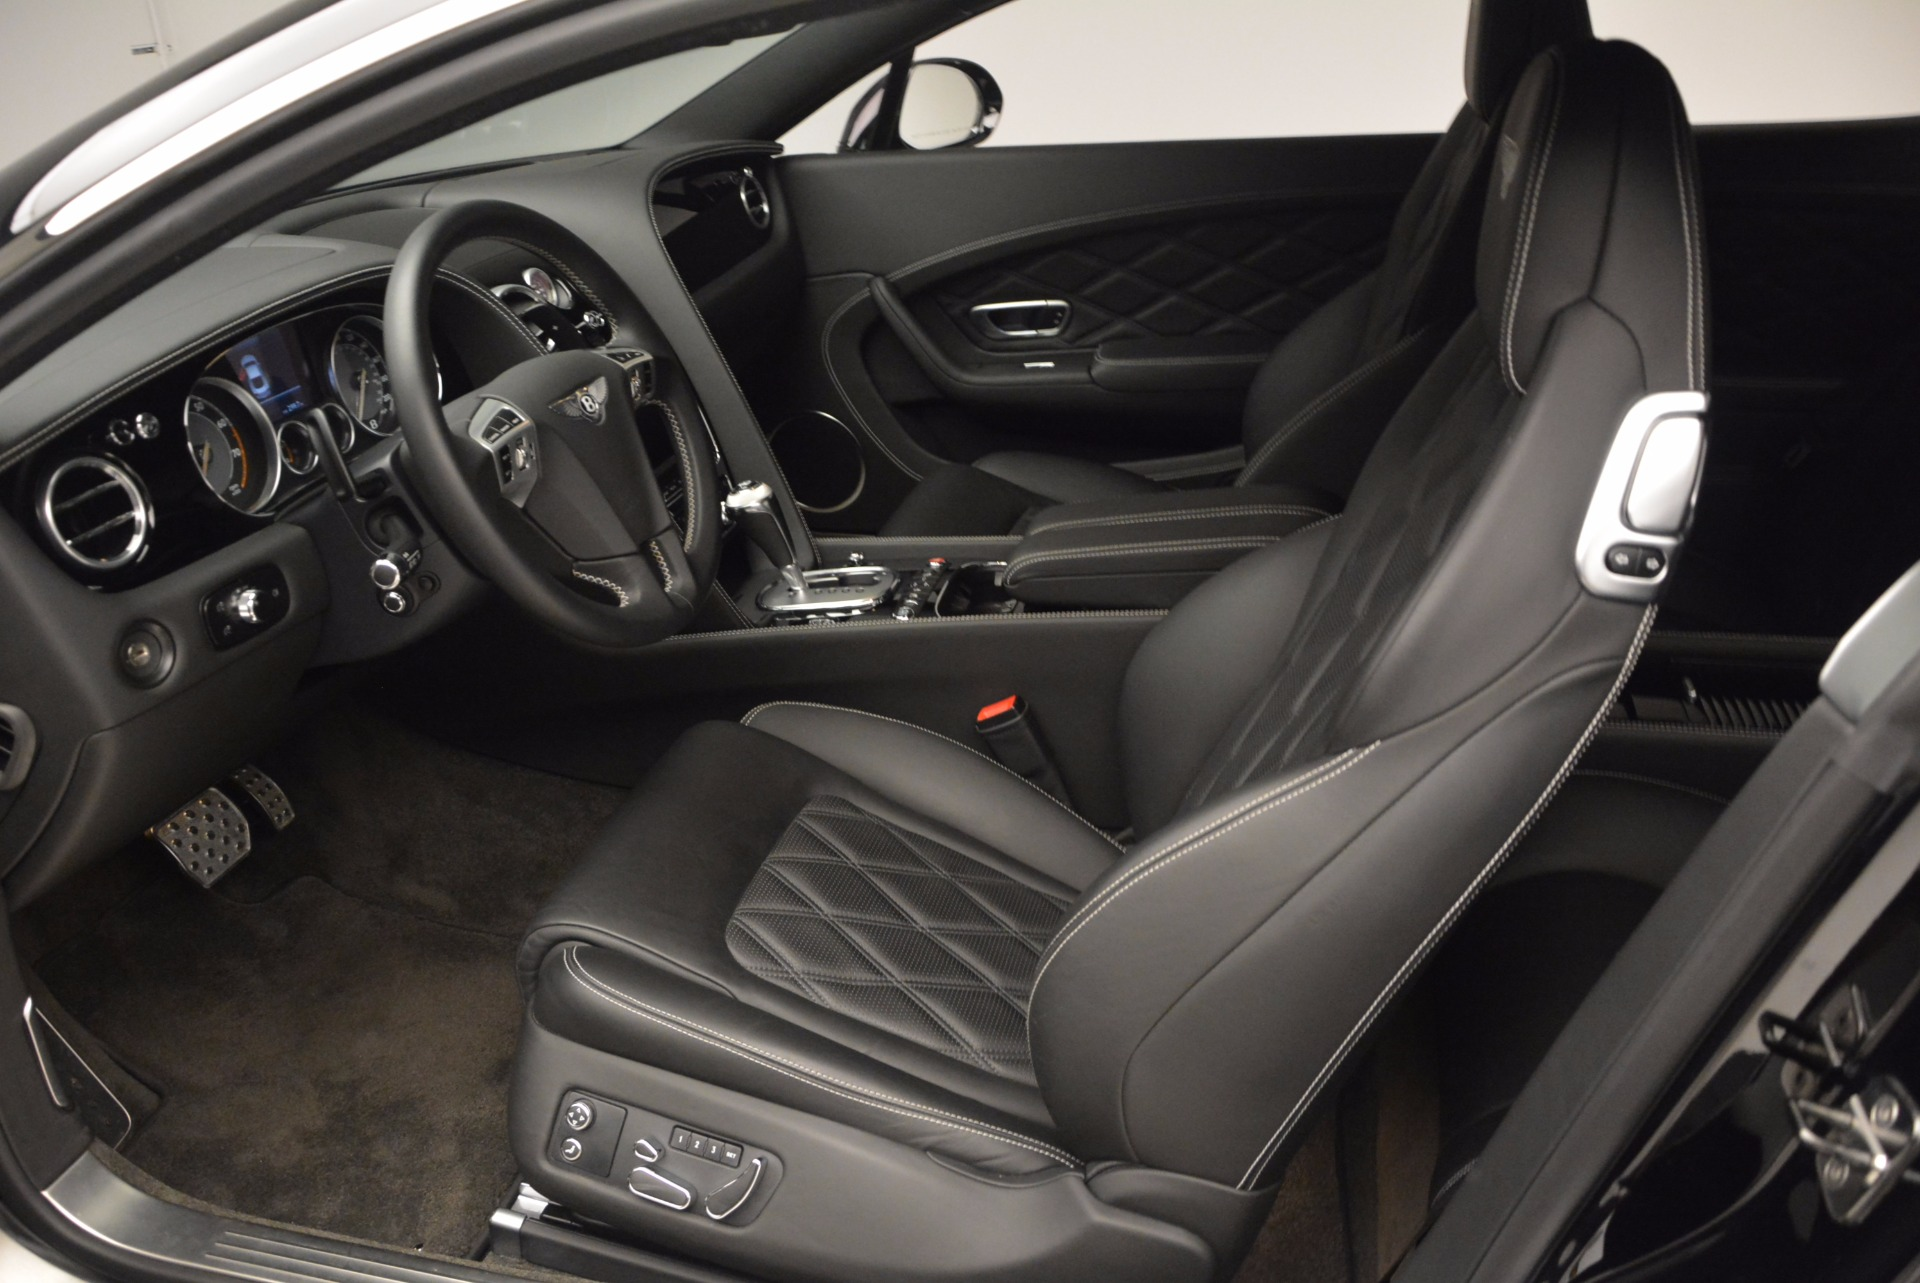 Used 2012 Bentley Continental GT W12 For Sale In Westport, CT 1717_p16